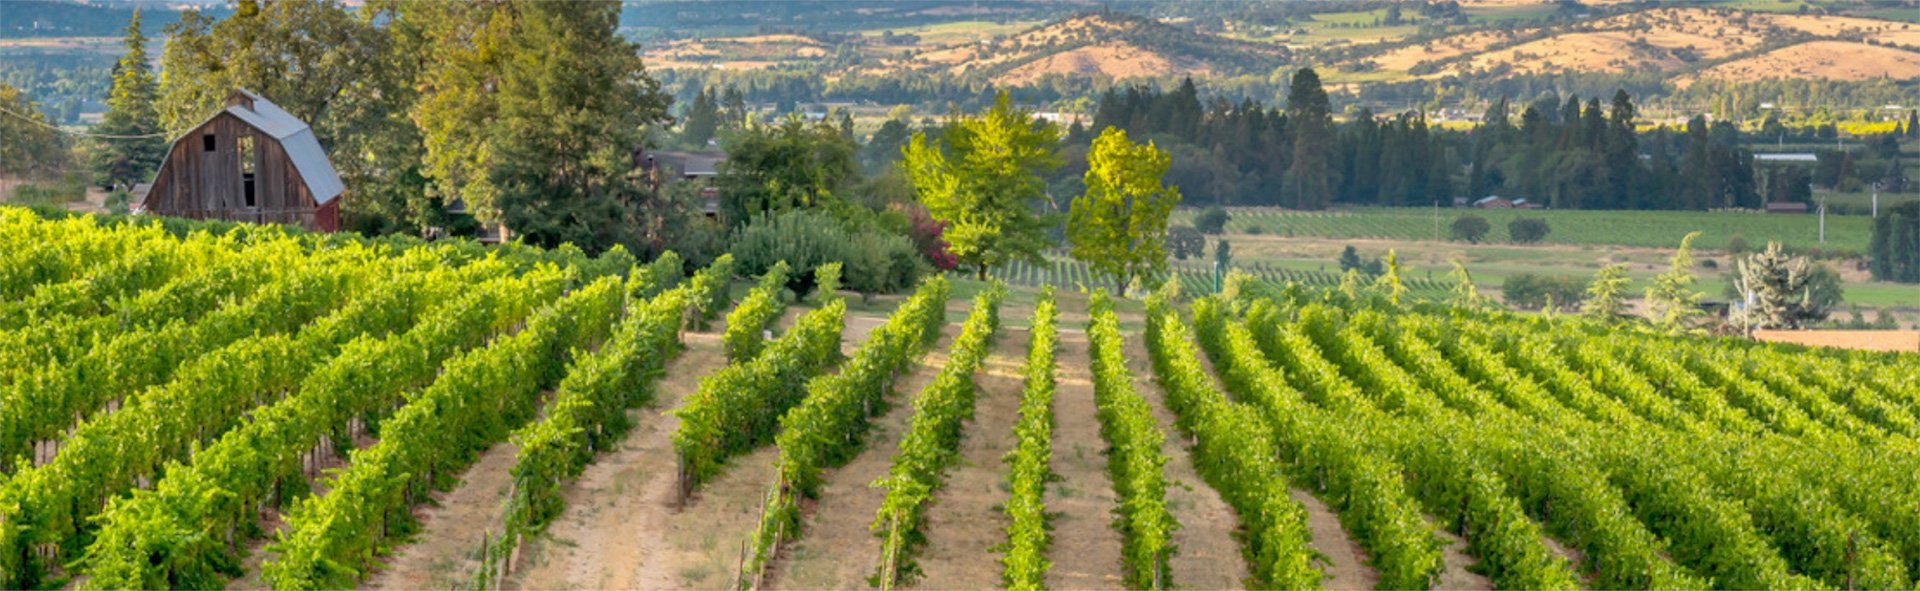 Rogue Valley from Medford, the heart of the Rogue